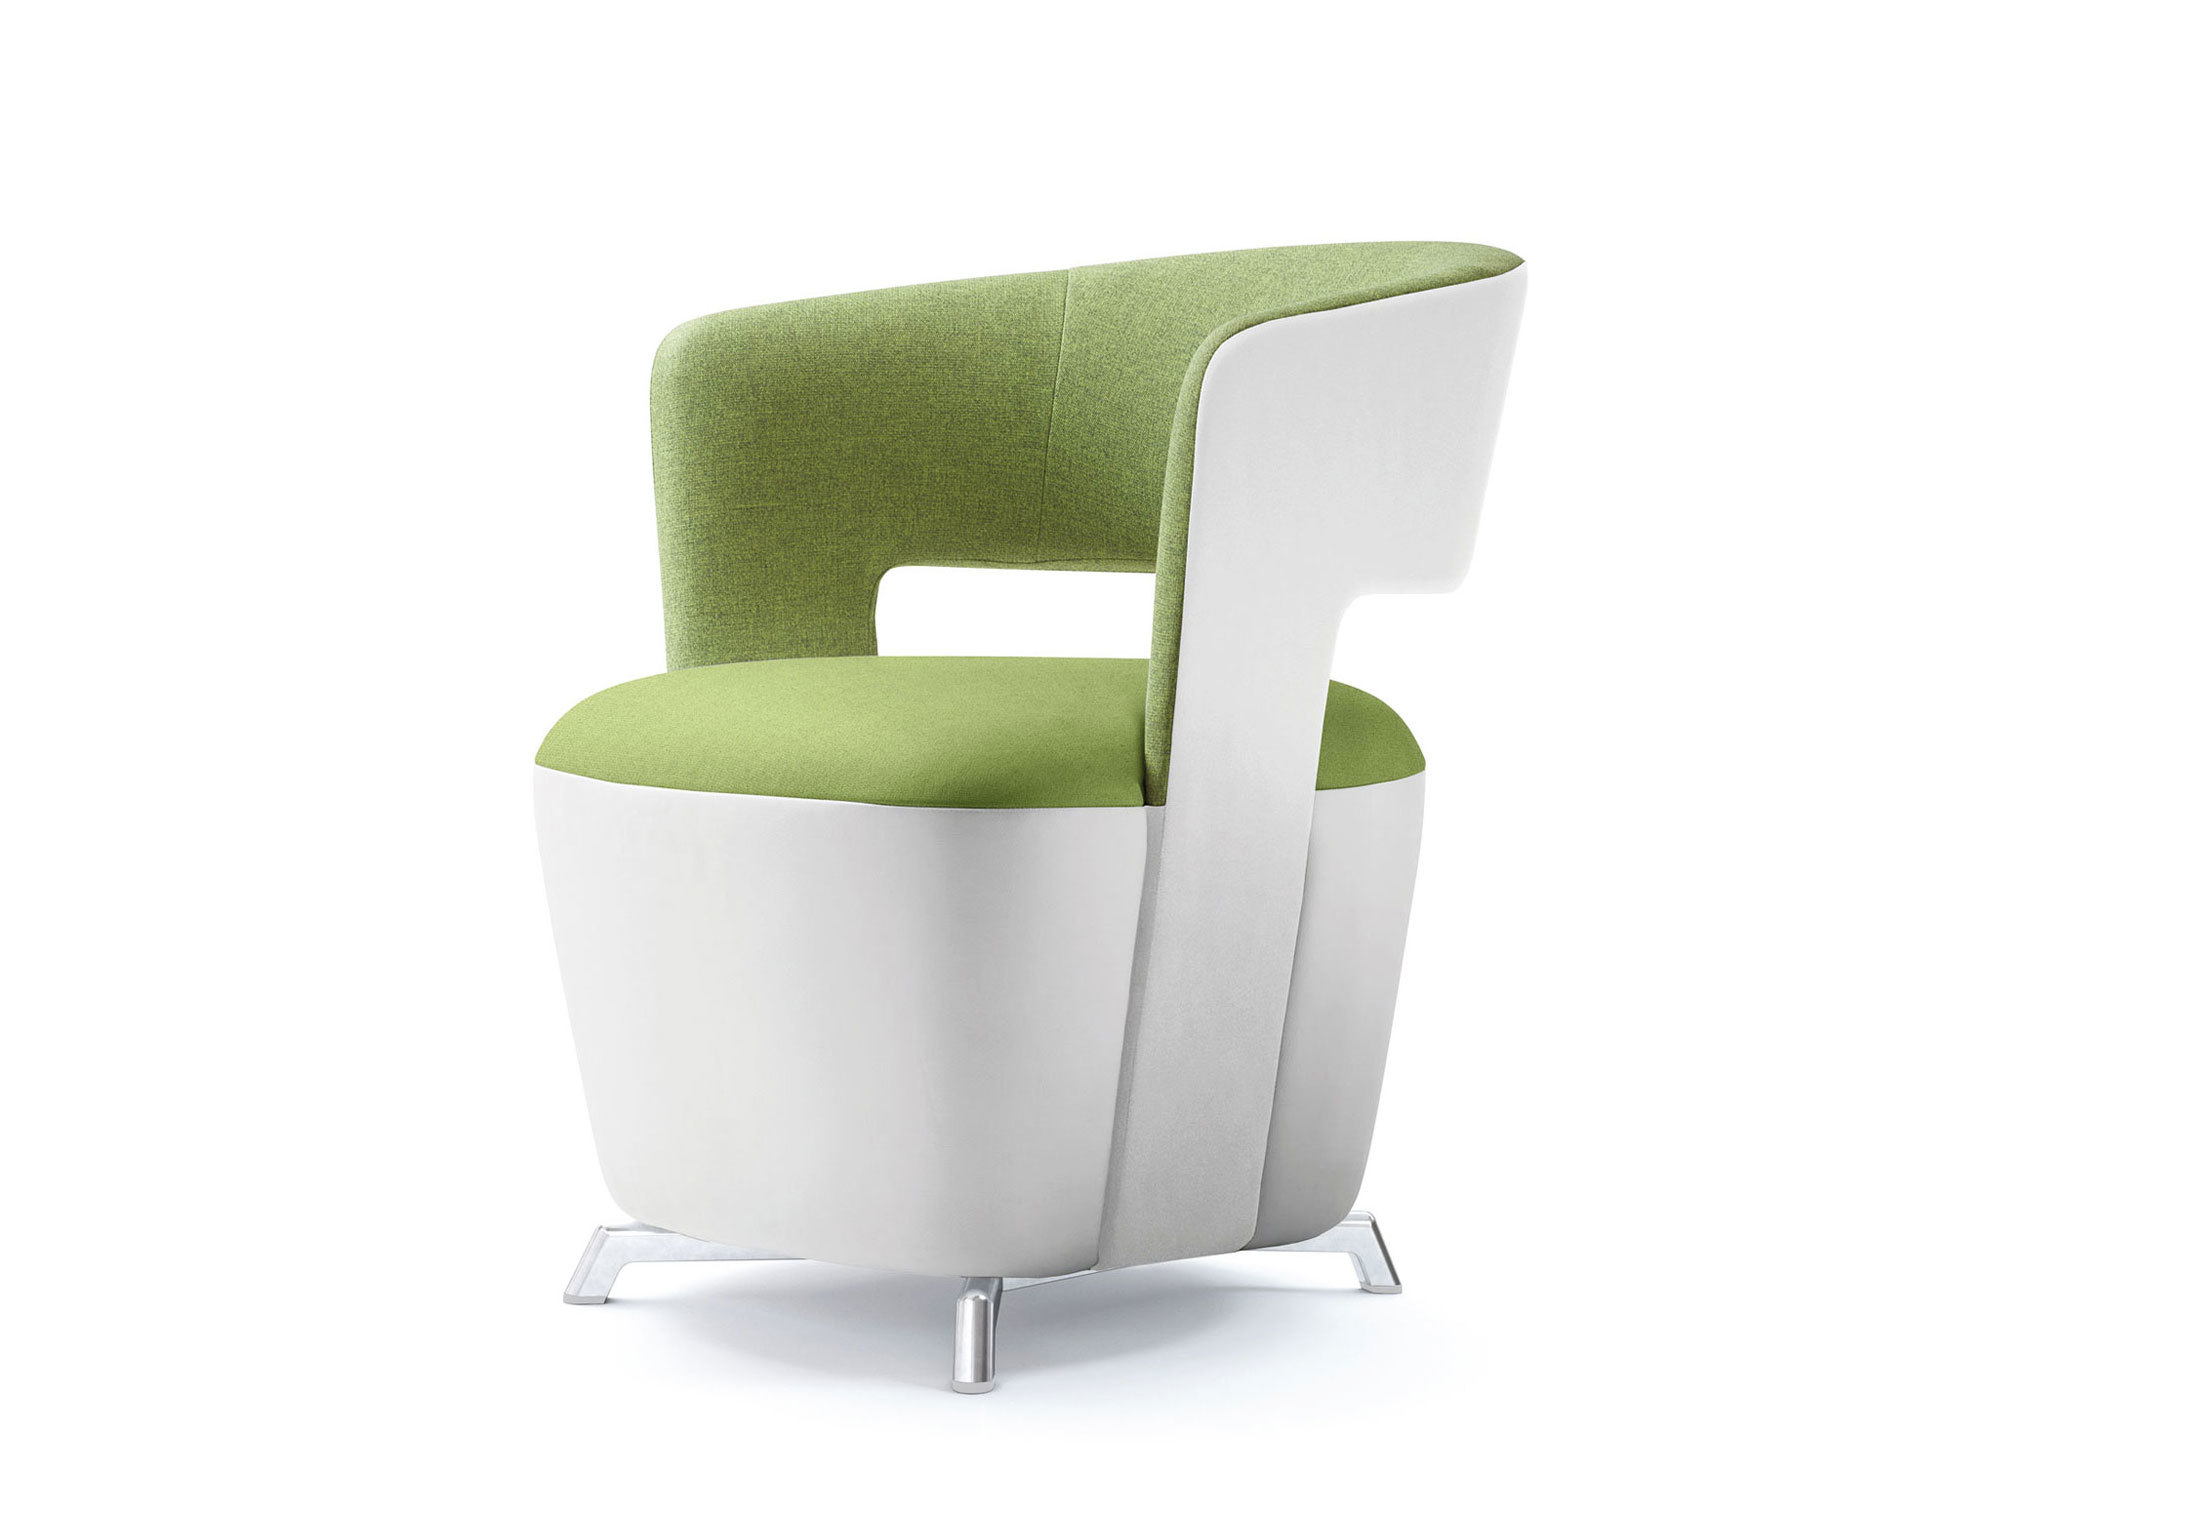 Dauphin Chairs Allore Lounge Chairs By Dauphin Stylepark